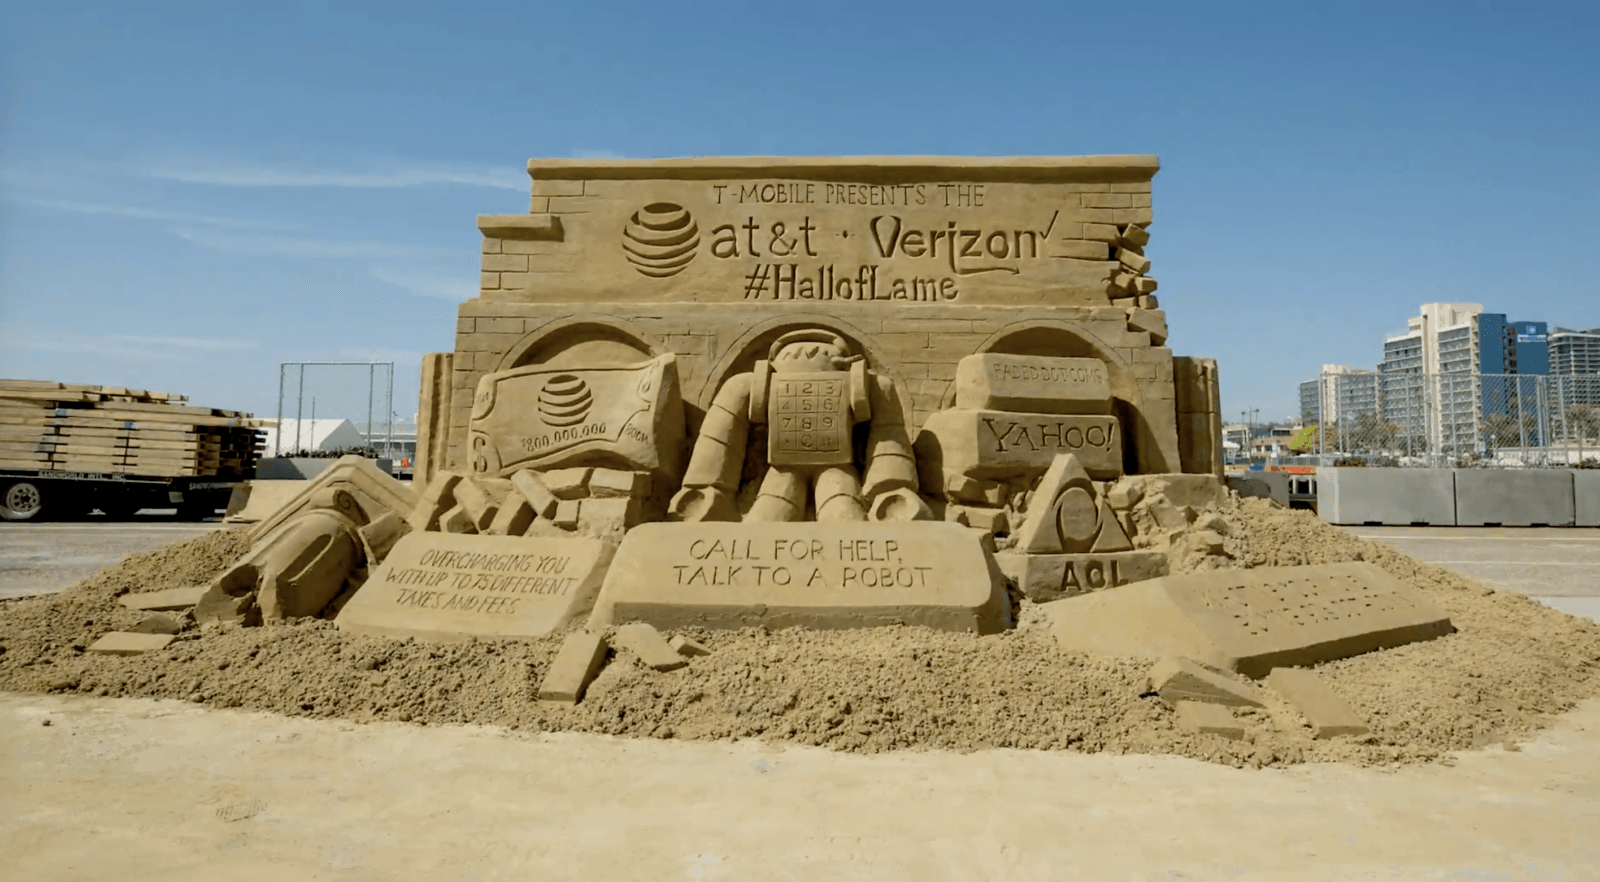 T Mobile Debuts Halloflame Sand Sculpture Taking Aim At